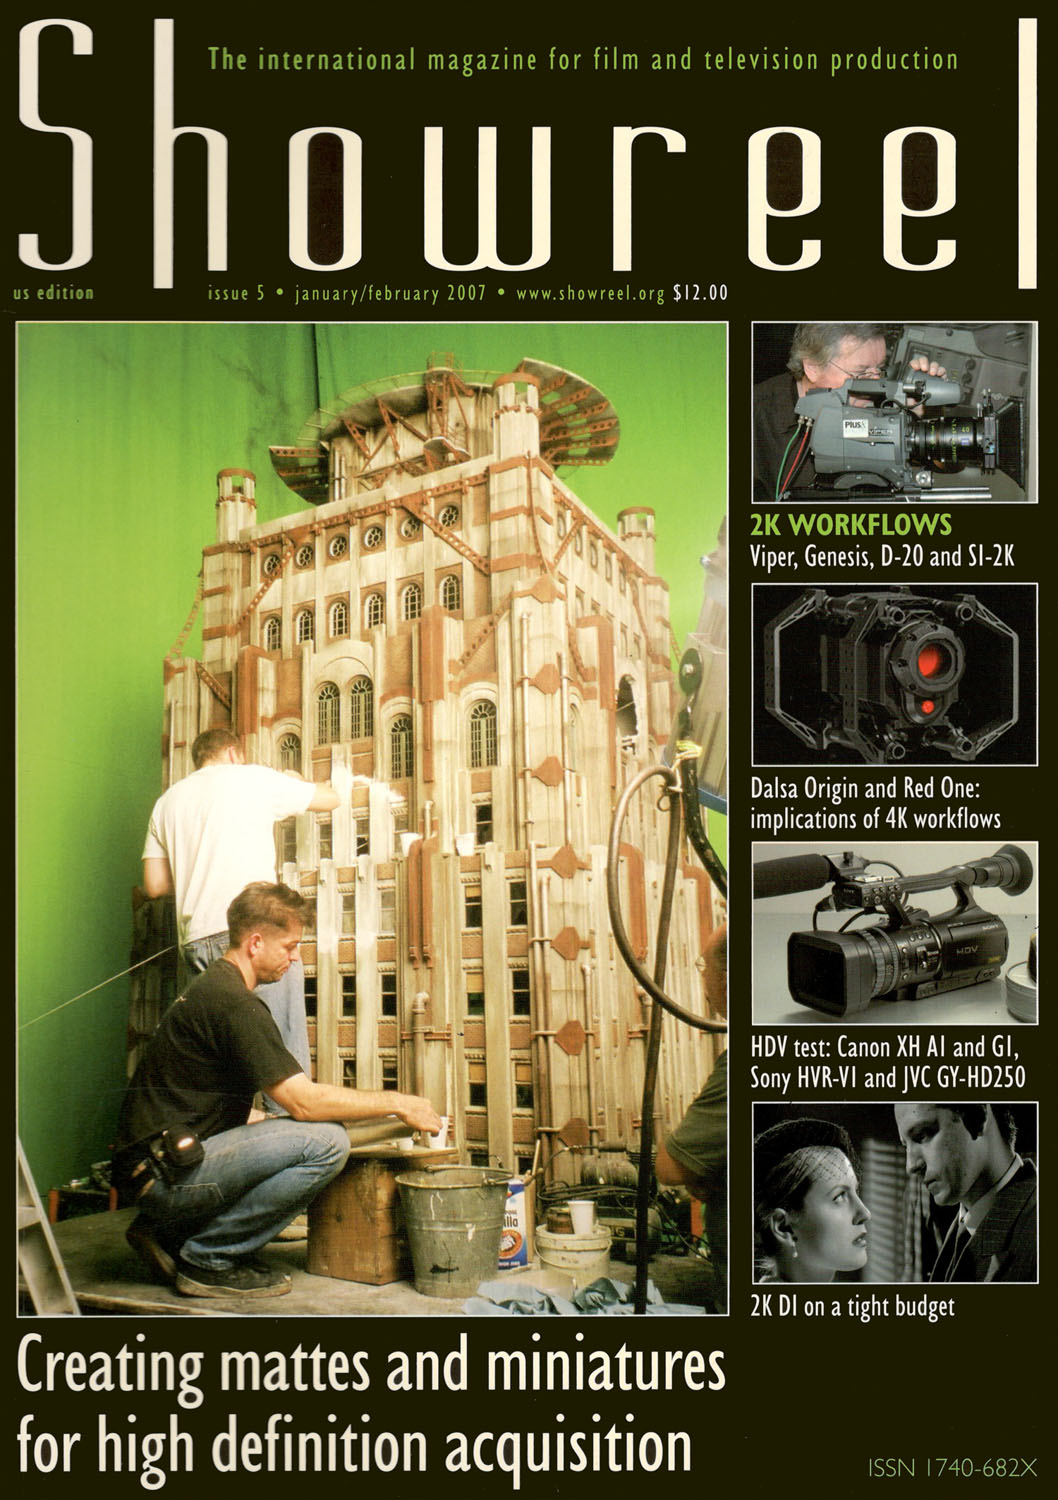 showreel_cover_issue-5_jan-fen-2007_us-edition_[leightook]_crop_[smal]_1058x1500_72dpi_high.jpg